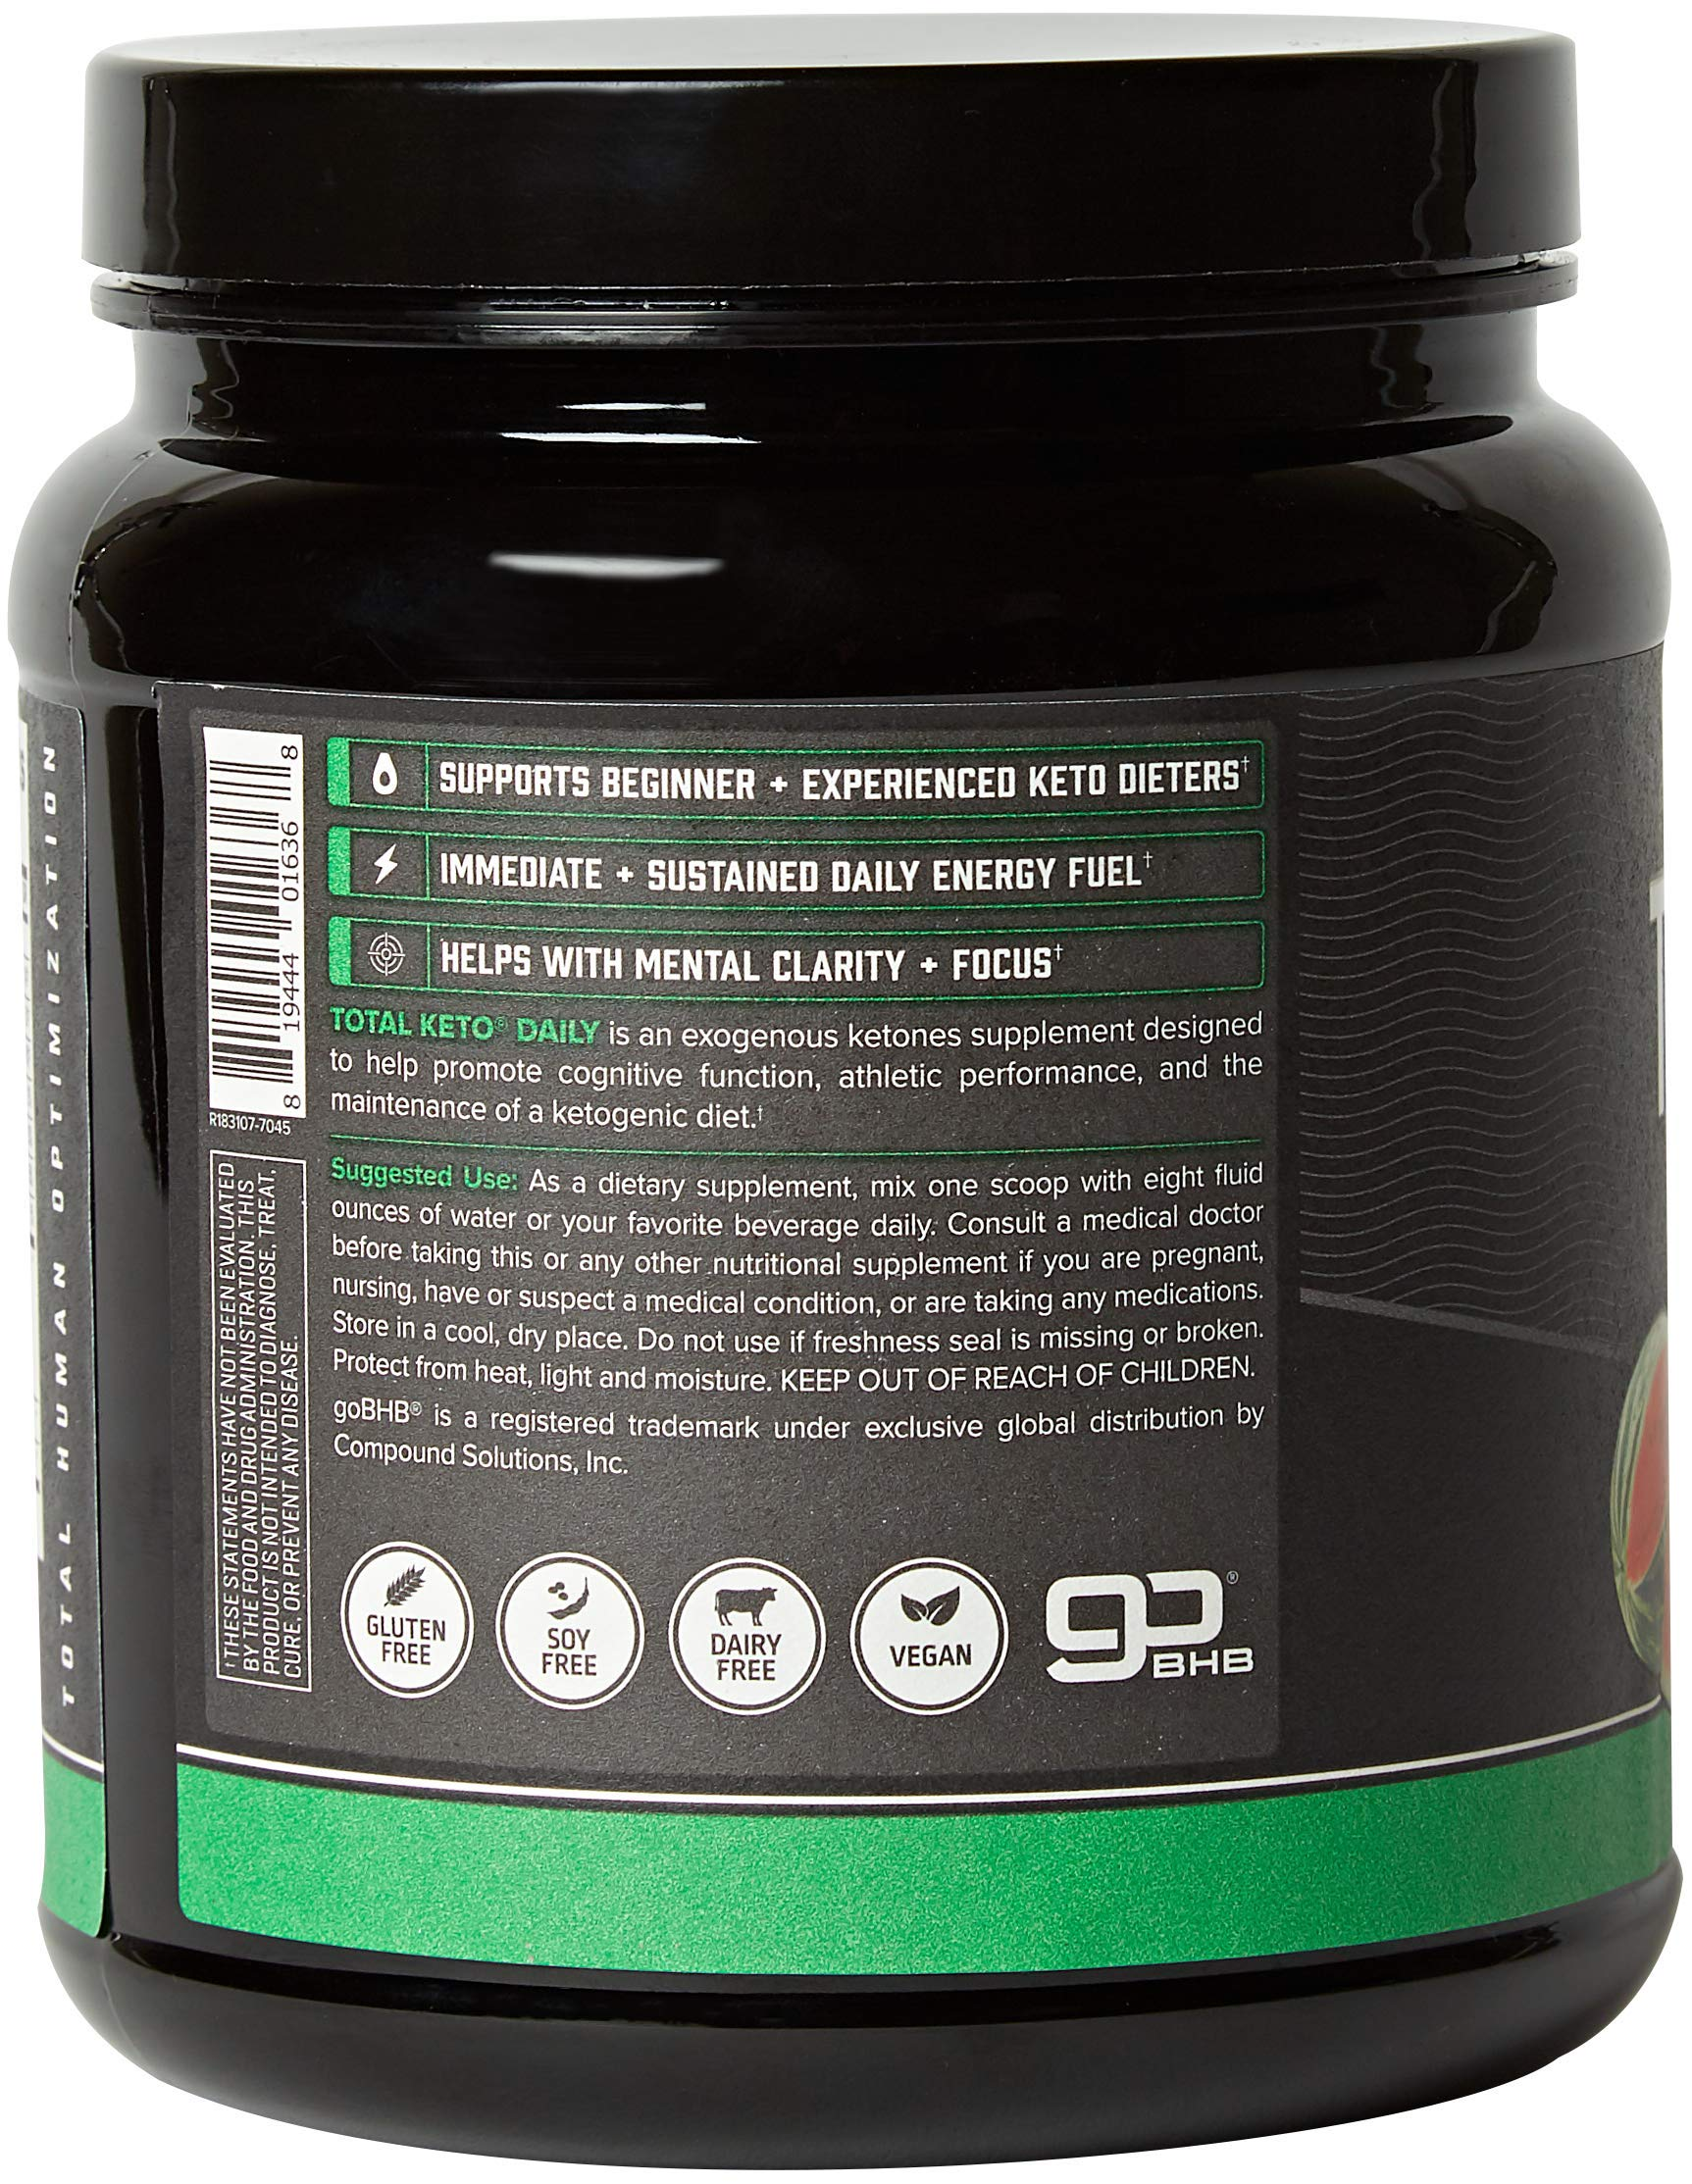 ONNIT Total Keto | Exogenous Ketones Supplement for Low Carb Diet | Premium Value Keto Supplement at 300g Ketone per Tub | Perfect Keto Fuel for Keto Shakes | Watermelon Flavor | 30 Servings by ONNIT (Image #3)